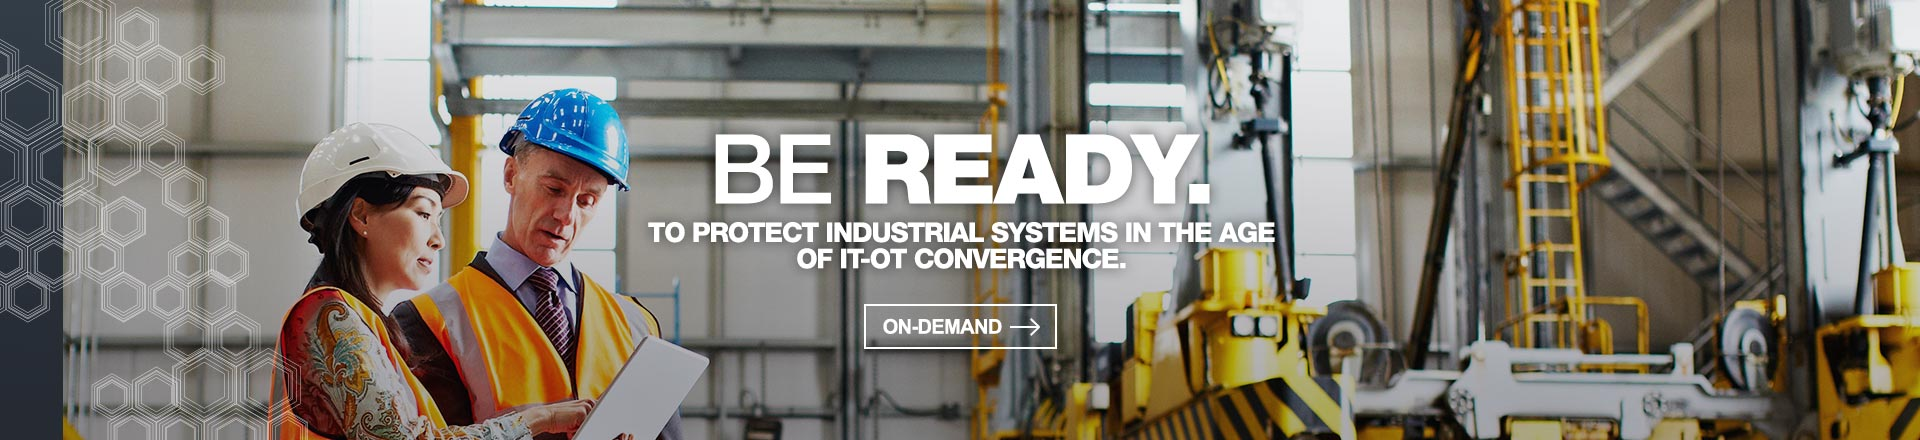 BE READY. TO PROTECT INDUSTRIAL SYSTEMS IN THE AGE OF IT-OT CONVERGENCE.